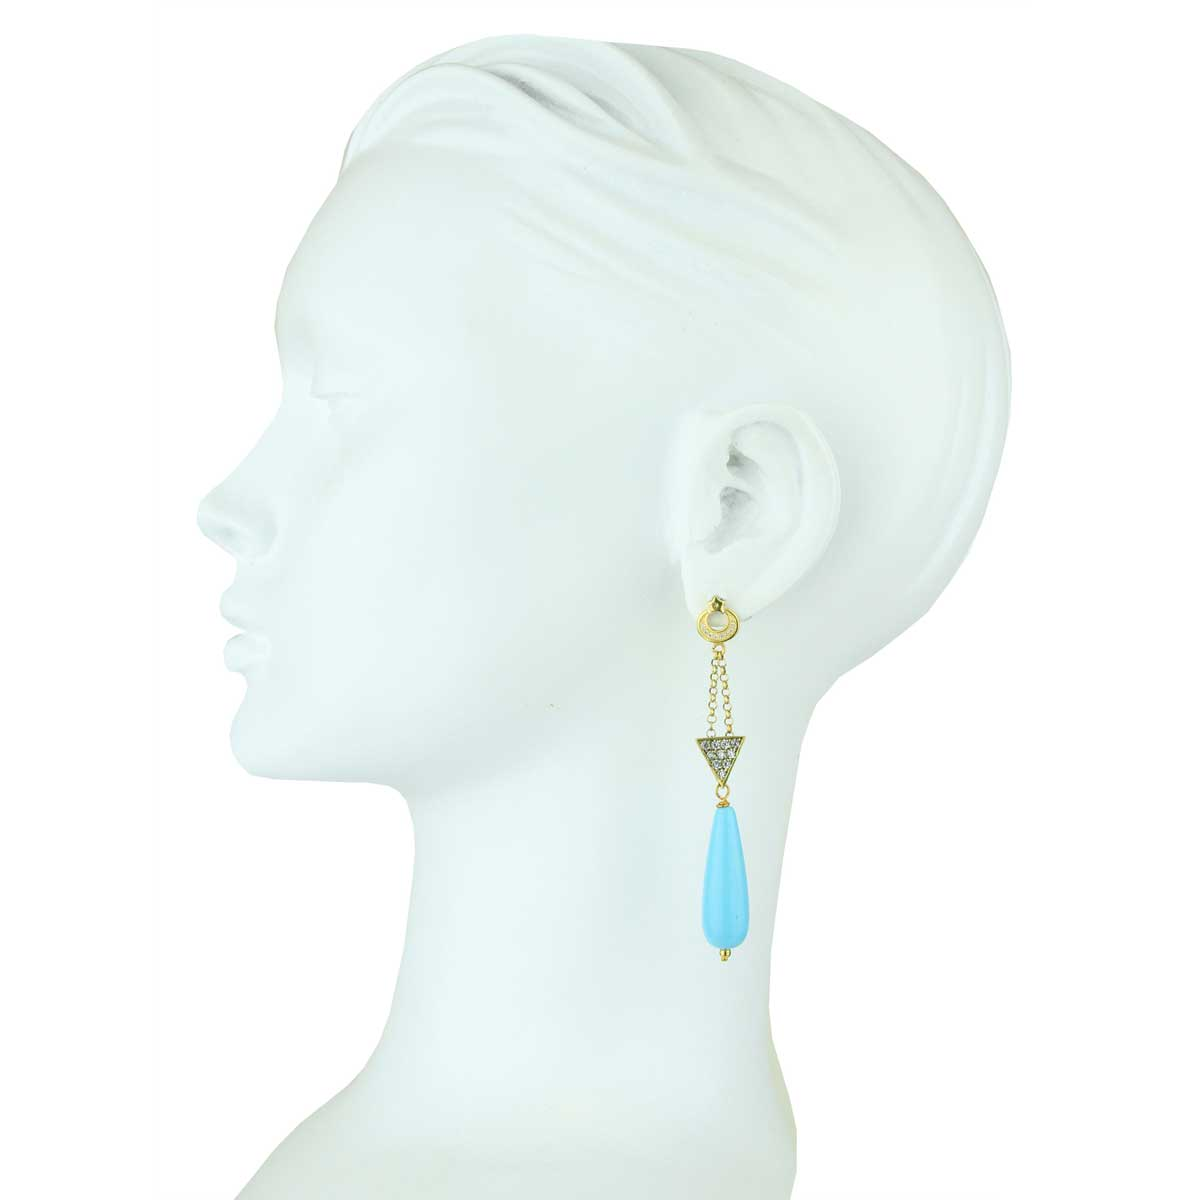 Aurora Gold Plated 925 Sterling Silver Crystals Earrings with Turquoise Drops